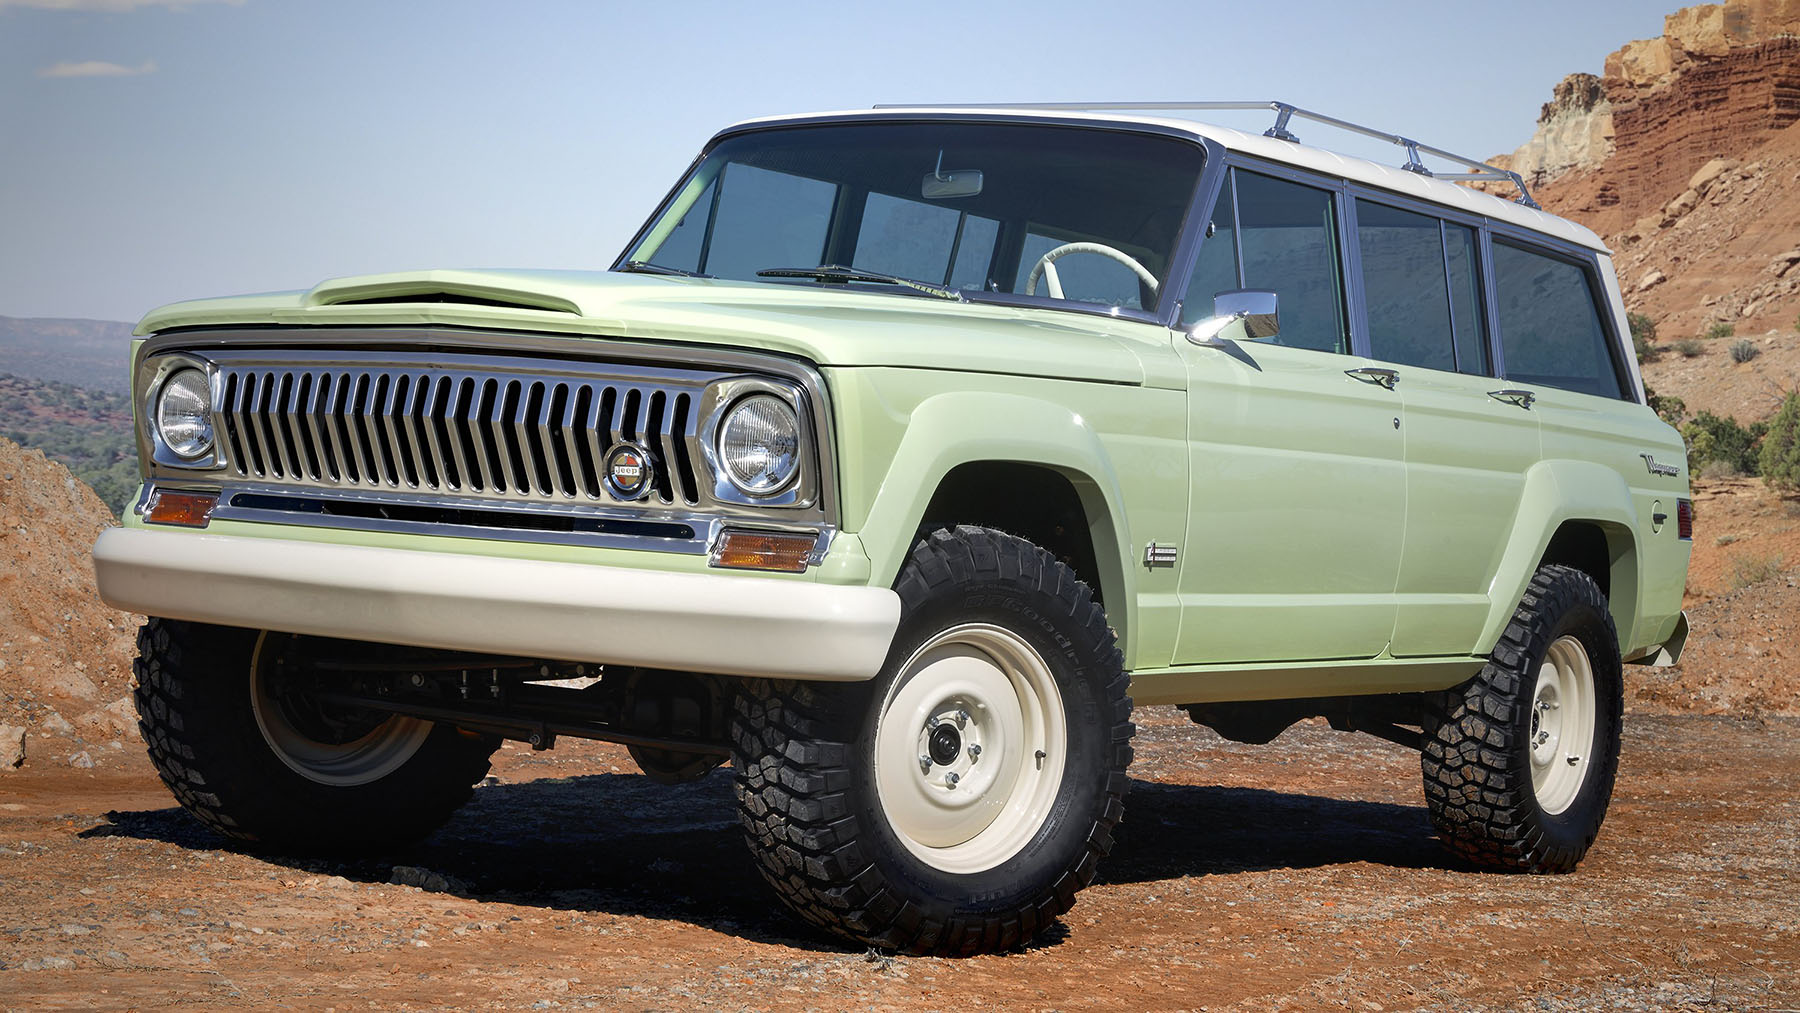 1965 Jeep Wagoneer With A Hemi V8 Engine Swap Depot Amc And Transmissions Unveiled Their Easter Safari Concepts One Stand Out Was The Luxury 44 Rides On Boxed Frame Stretched Five Inches